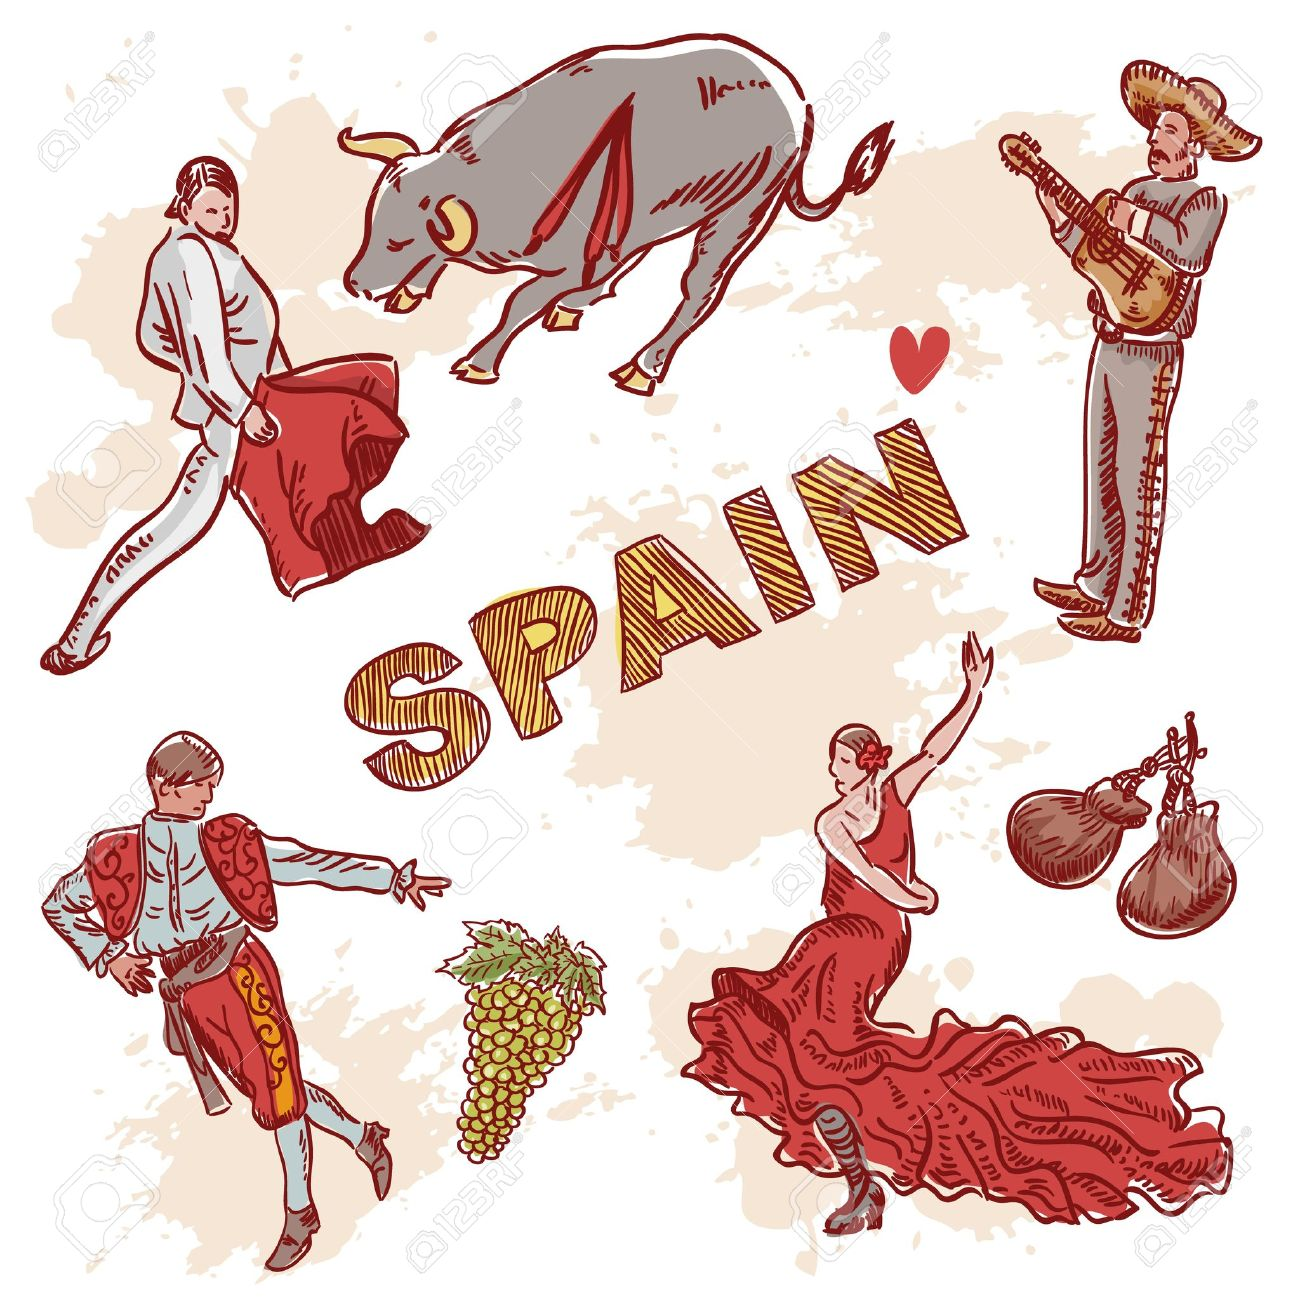 Spanish Culture Stock Photos Images. Royalty Free Spanish Culture.